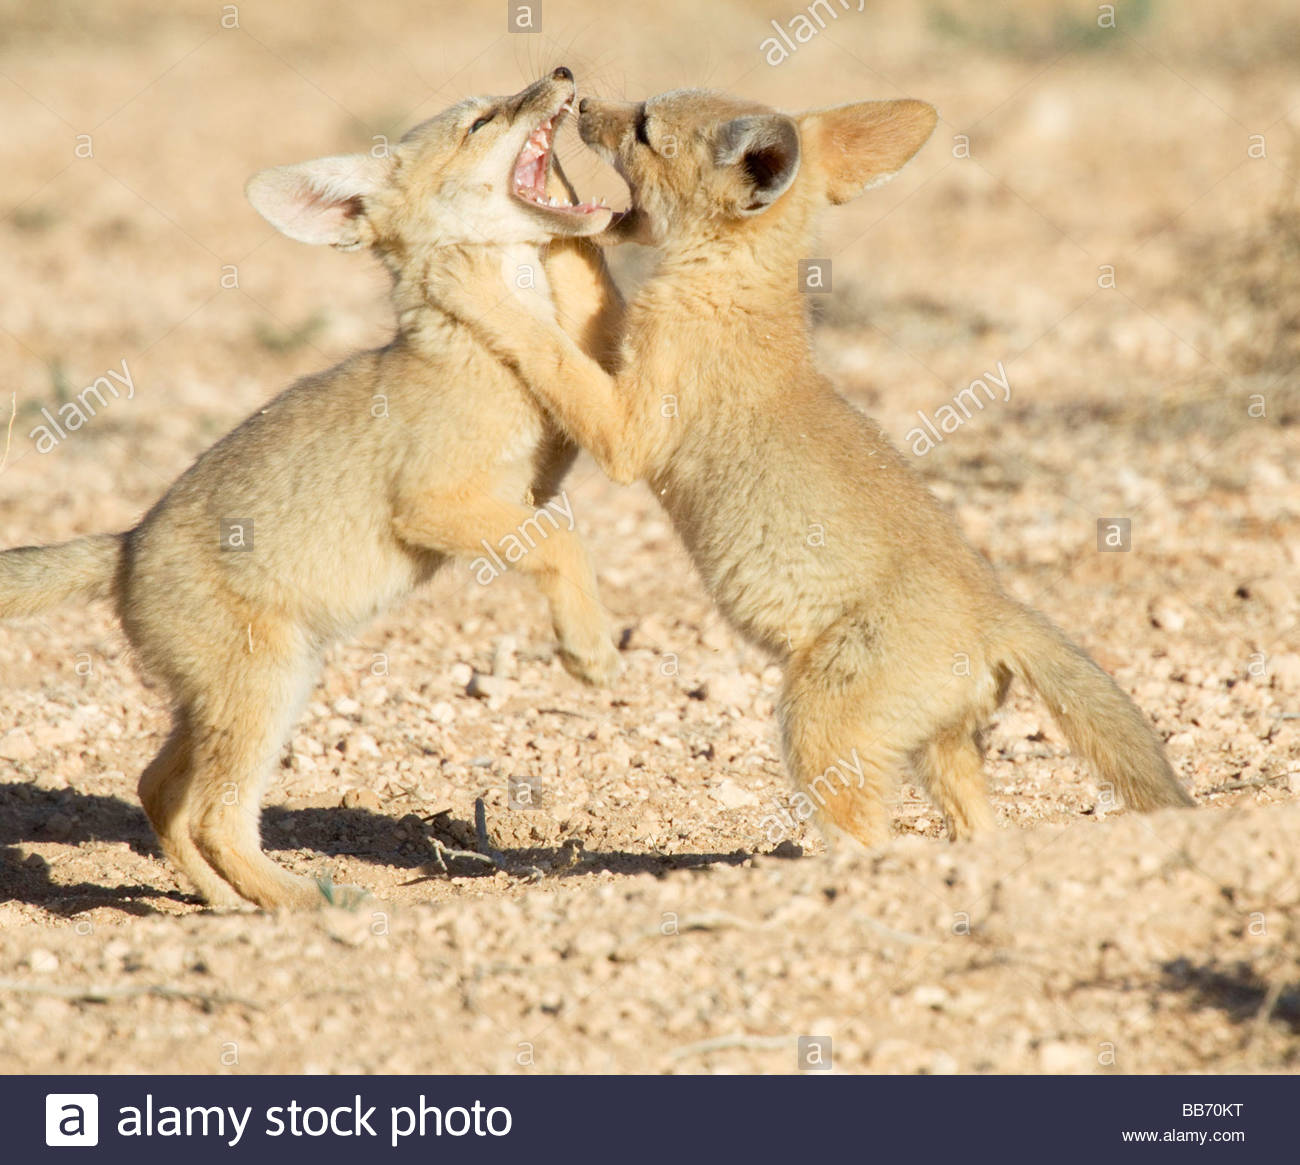 kit-foxes-vulpes-macrotis-pups-playing-roughhousing-BB70KT.jpg